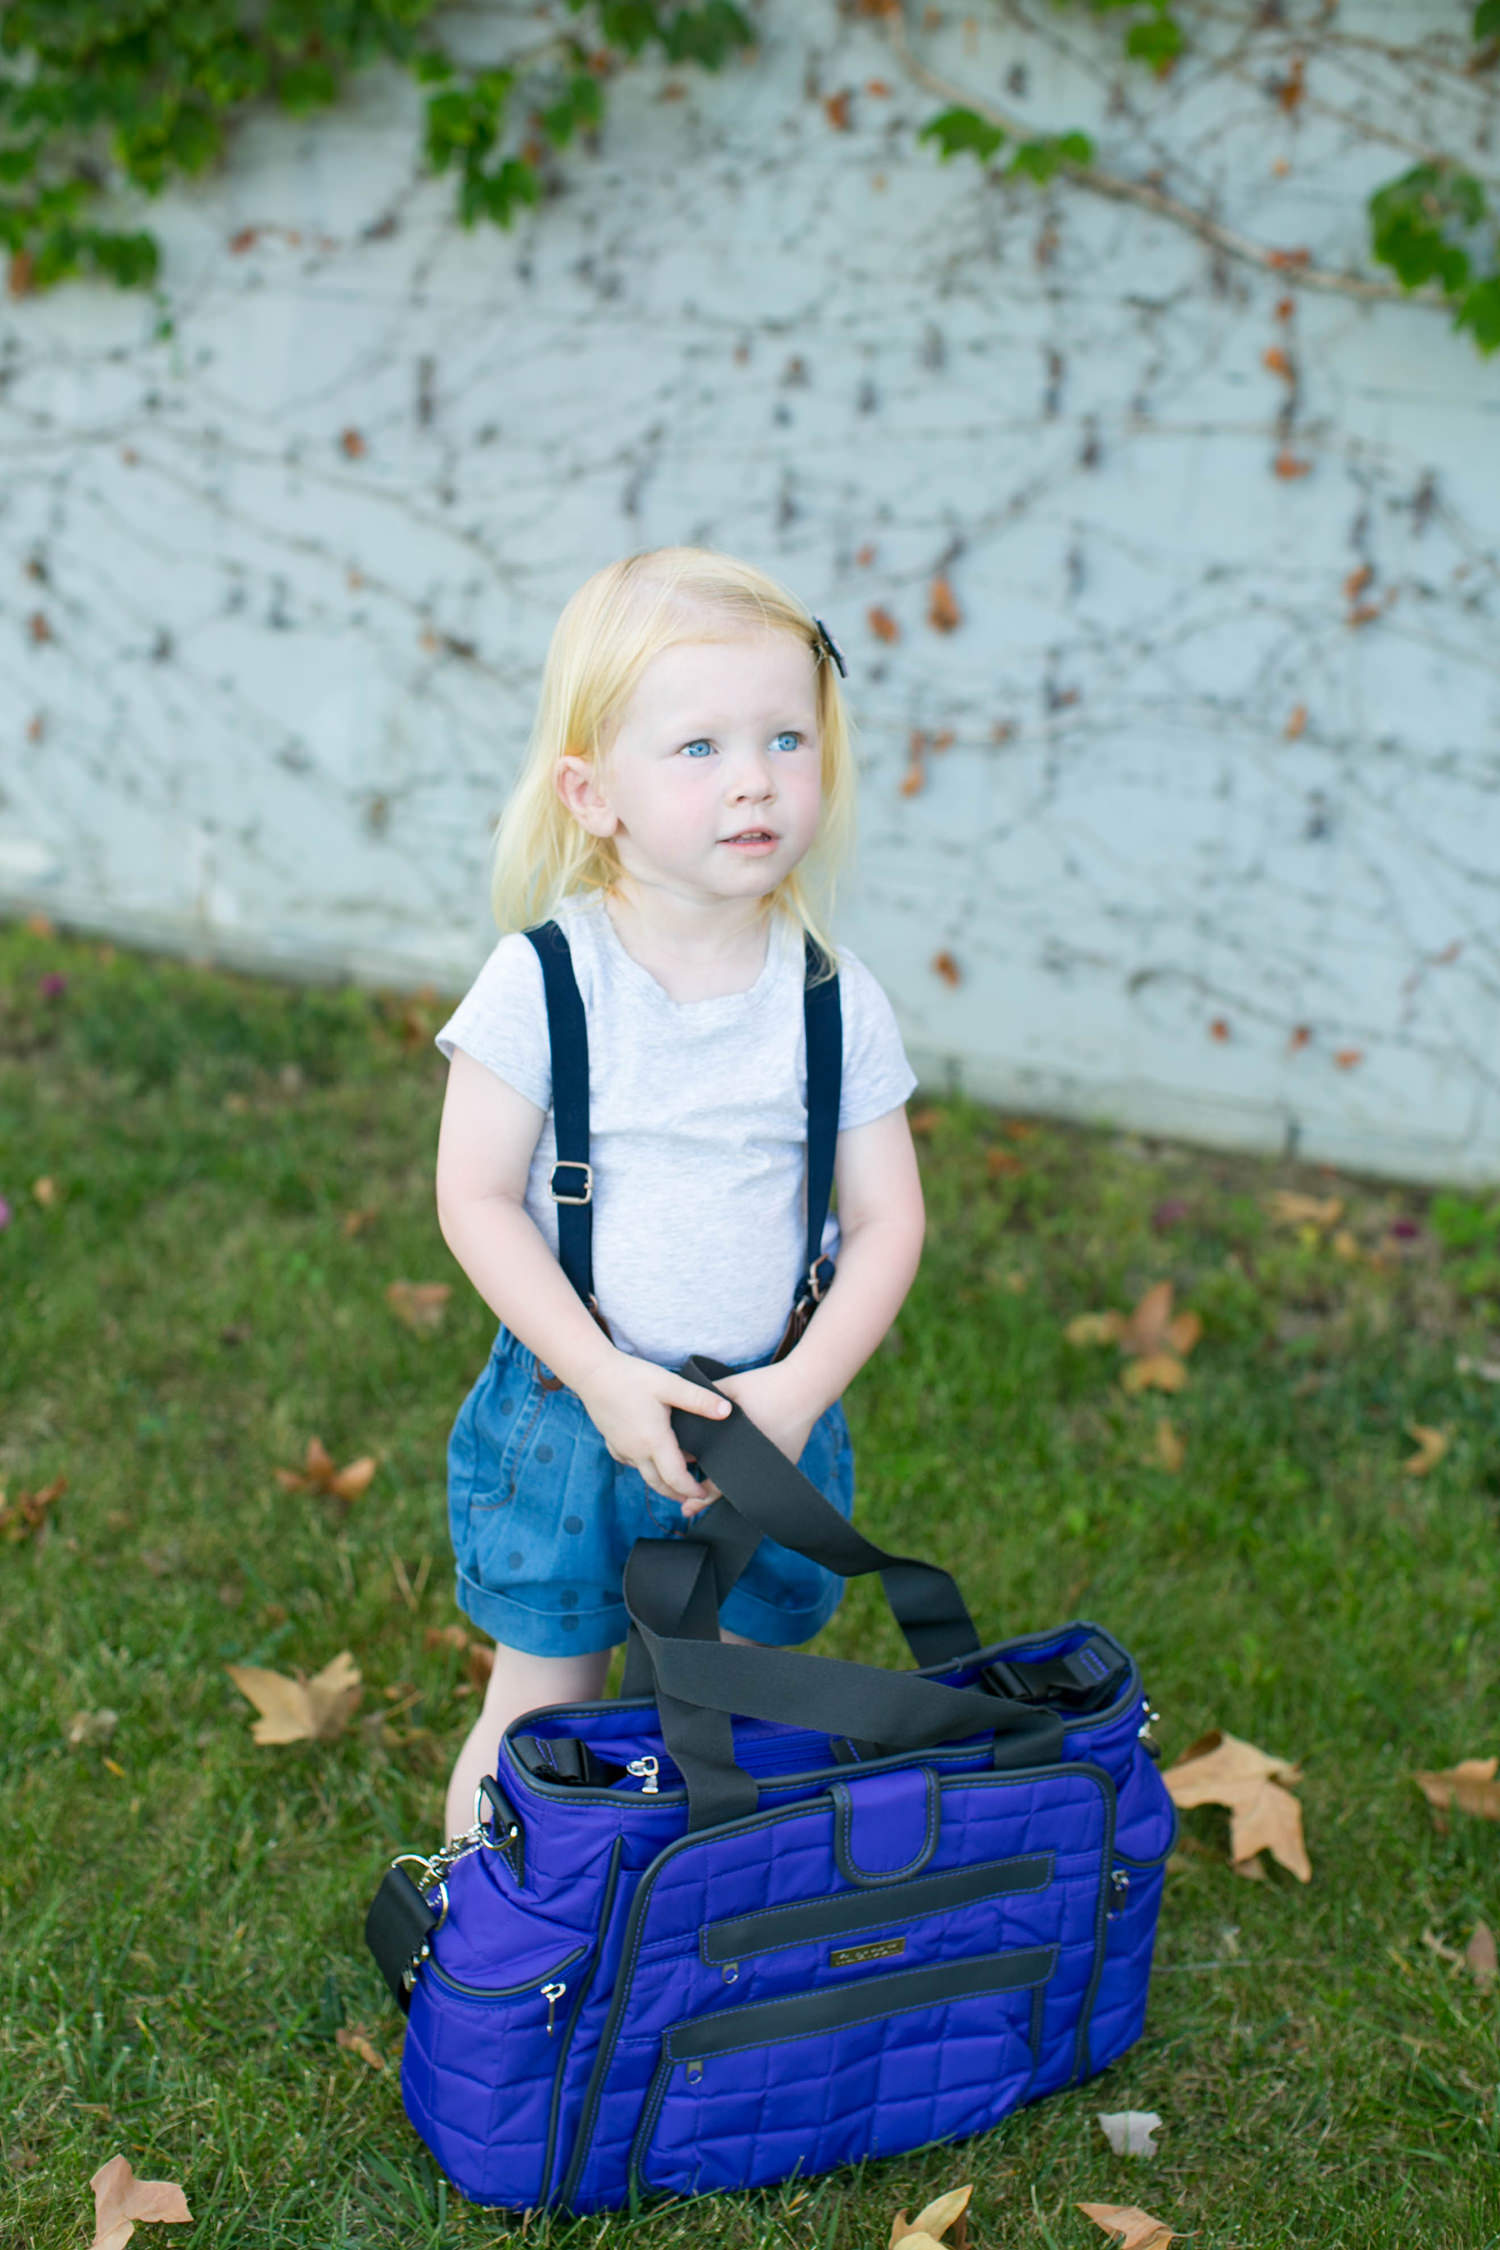 Those toddler suspenders are to die for!